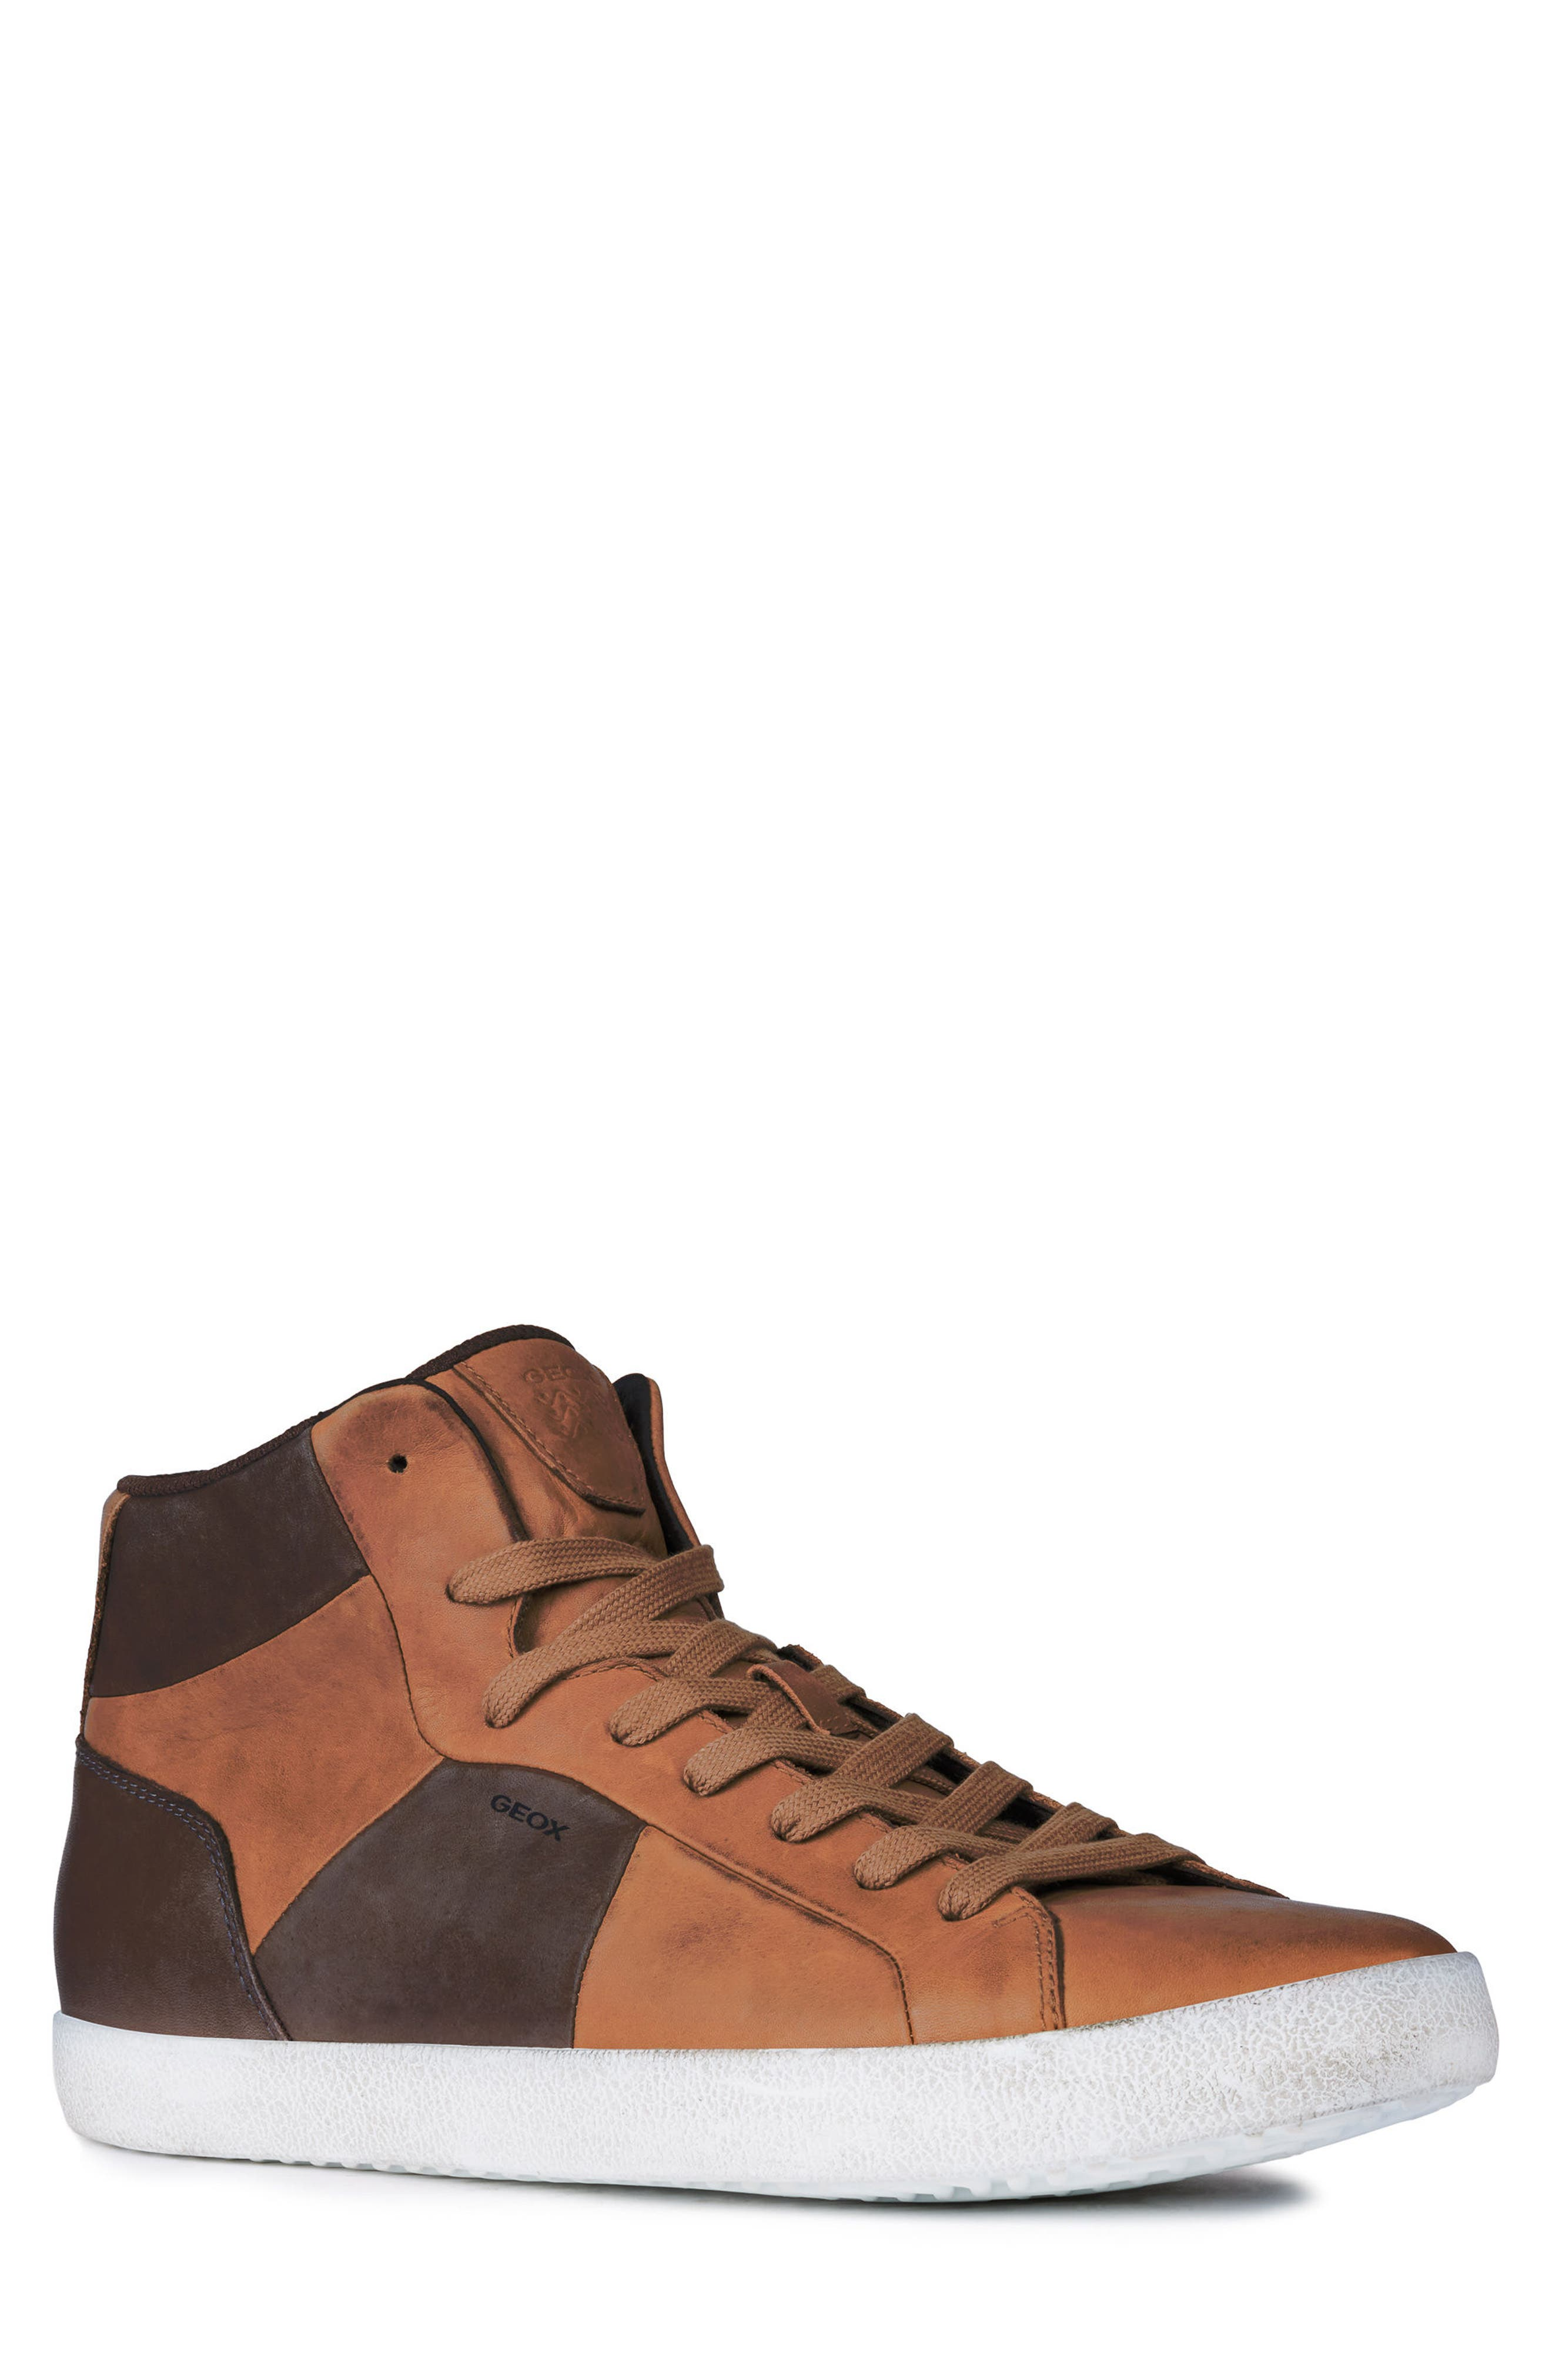 Smart 84 High Top Sneaker,                             Main thumbnail 1, color,                             COGNAC/ COFFEE LEATHER